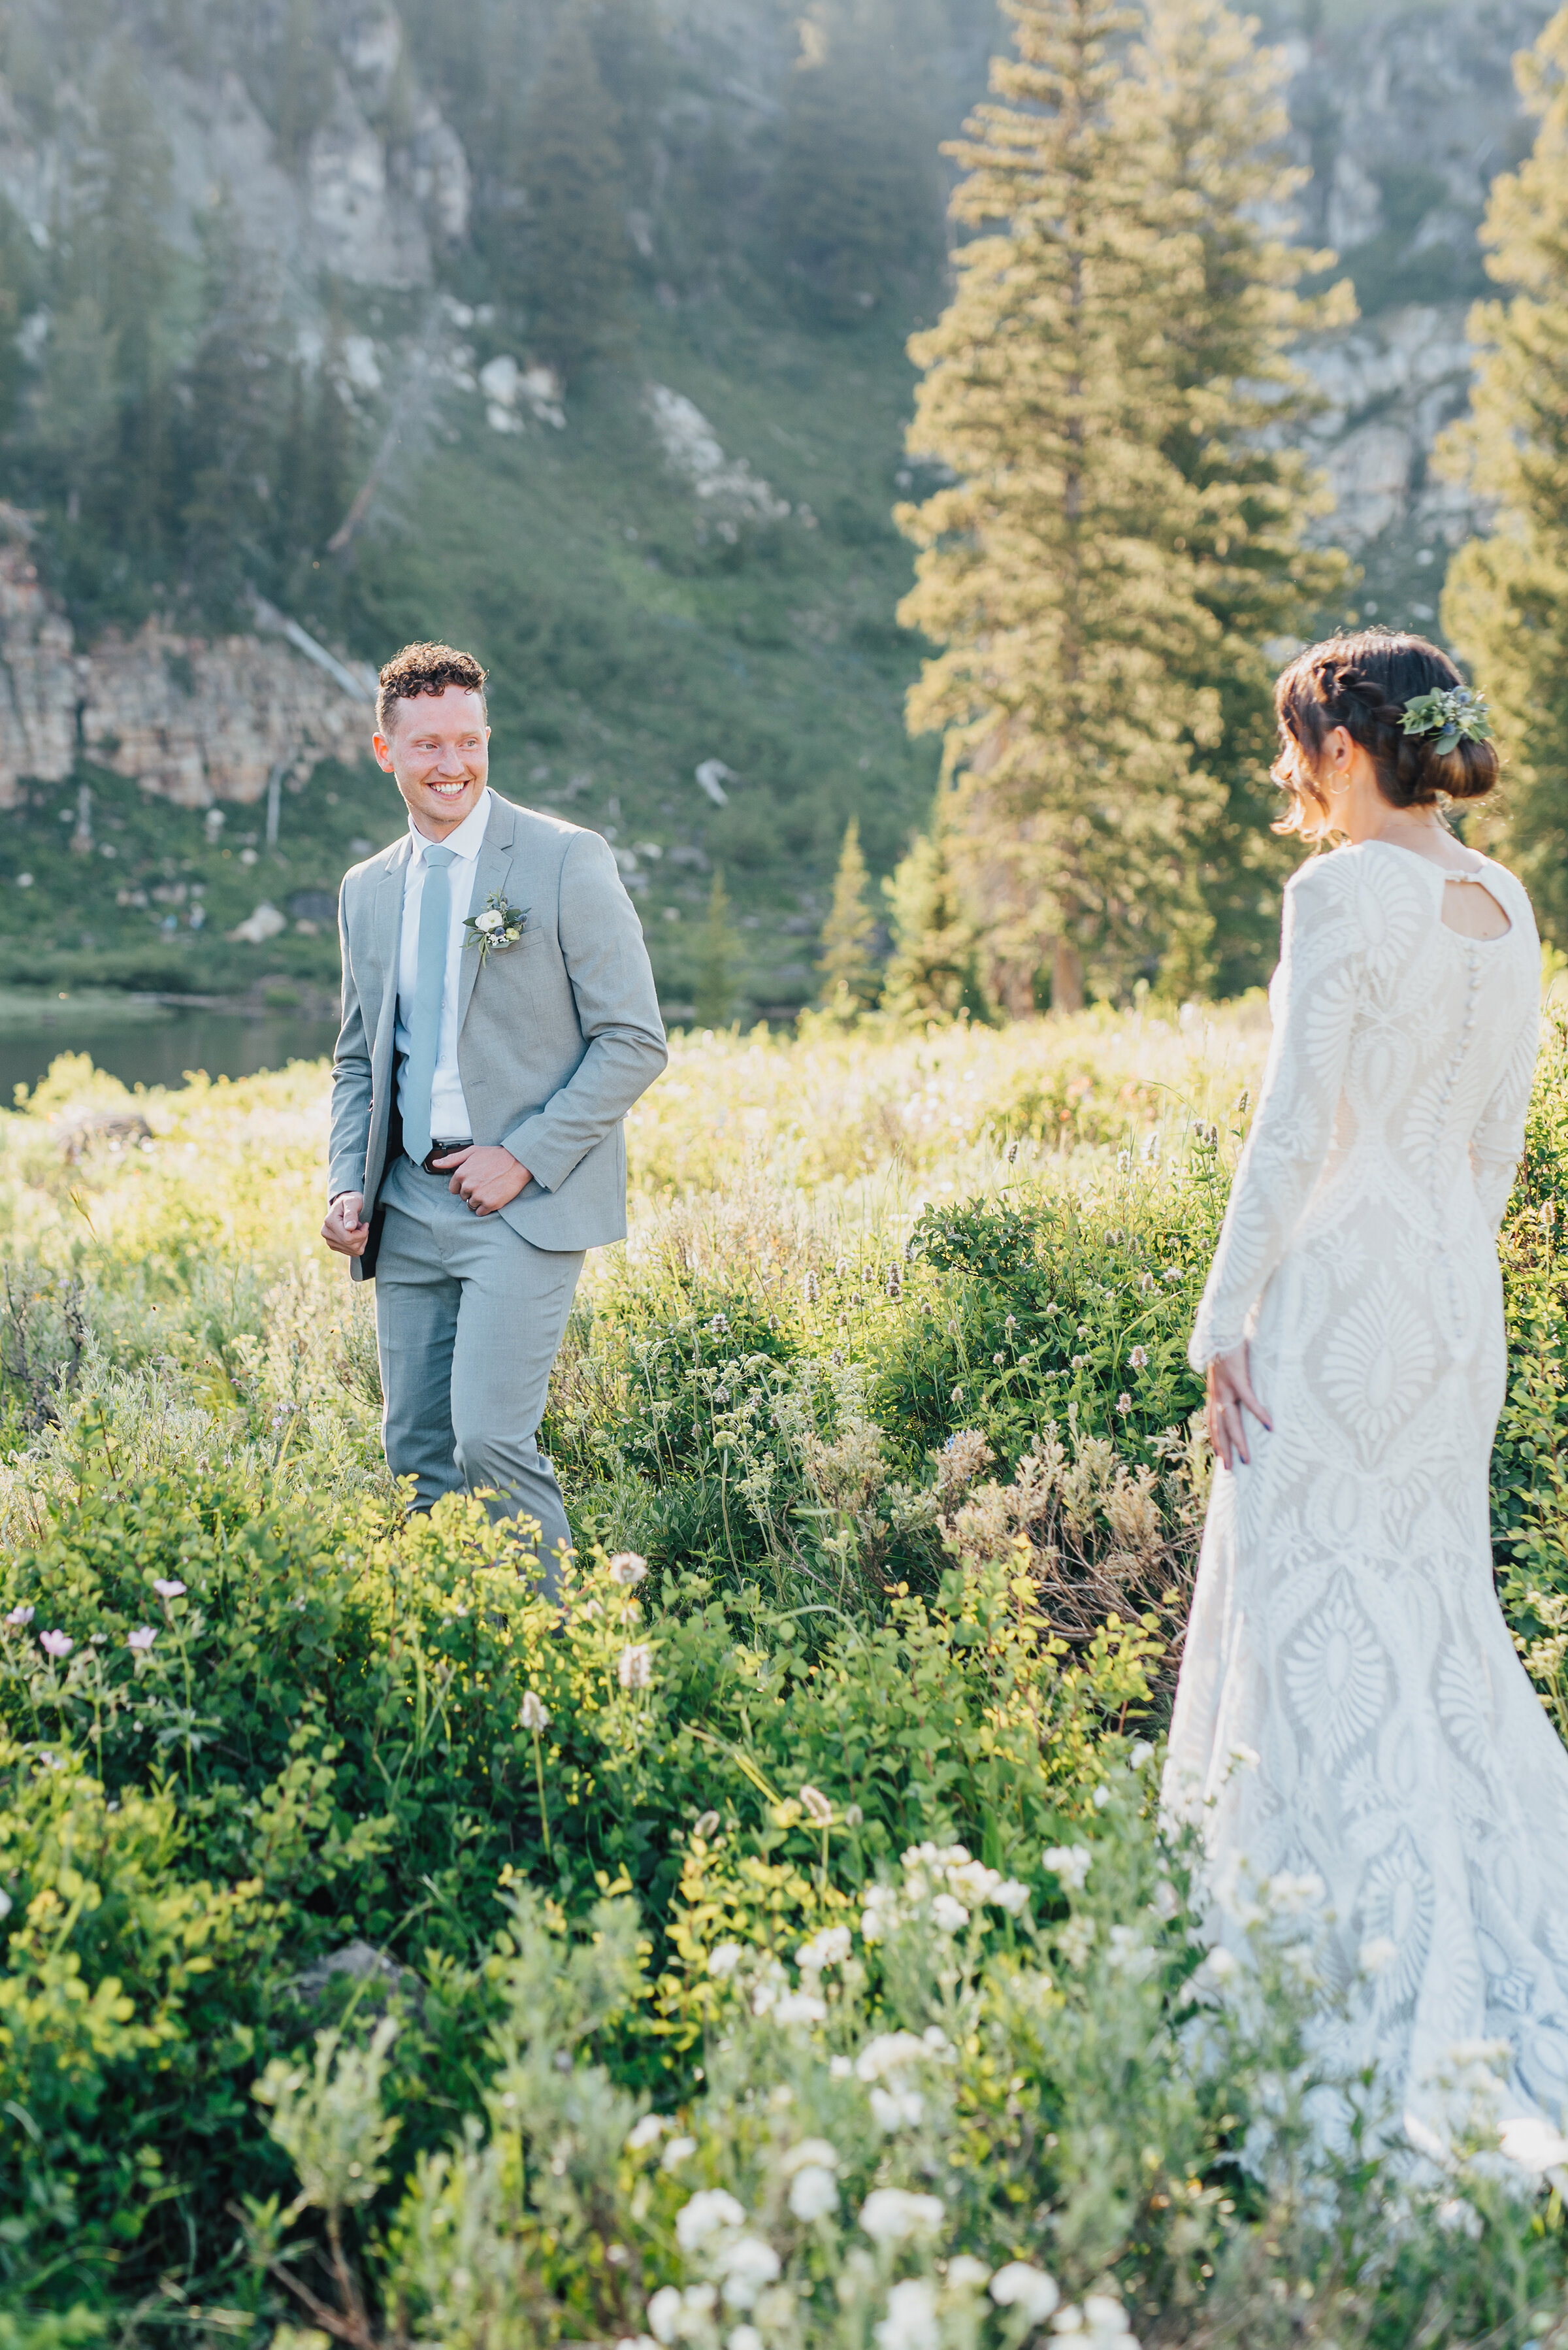 Overjoyed groom at the sight of his bride to be during their first look up Logan canyon at Tony Grove. Kristi Alyse photography Logan Utah wedding photographer forest nature dreamy formals Logan canyon Tony Grove scenic bridals Northern Utah photographer Utah brides bride and groom Cache Valley #kristialysephotography #loganutahphotographer #tonygrove #logancanyon #utahweddingphotographer #bridals #formals #wildflowers #northernutah #utahbrides